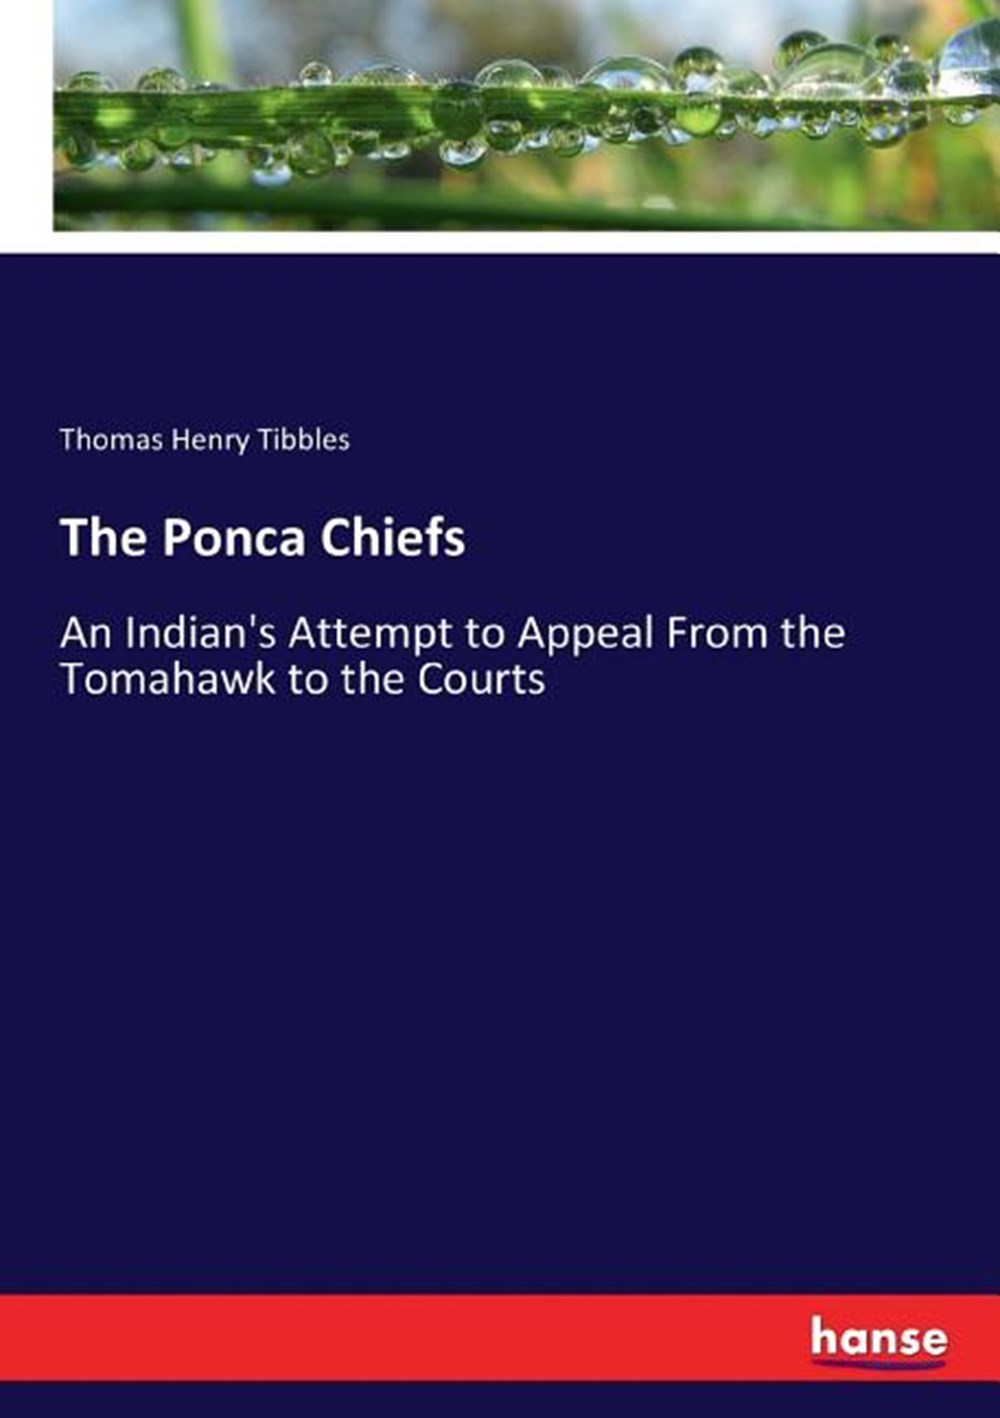 Ponca Chiefs An Indian's Attempt to Appeal From the Tomahawk to the Courts